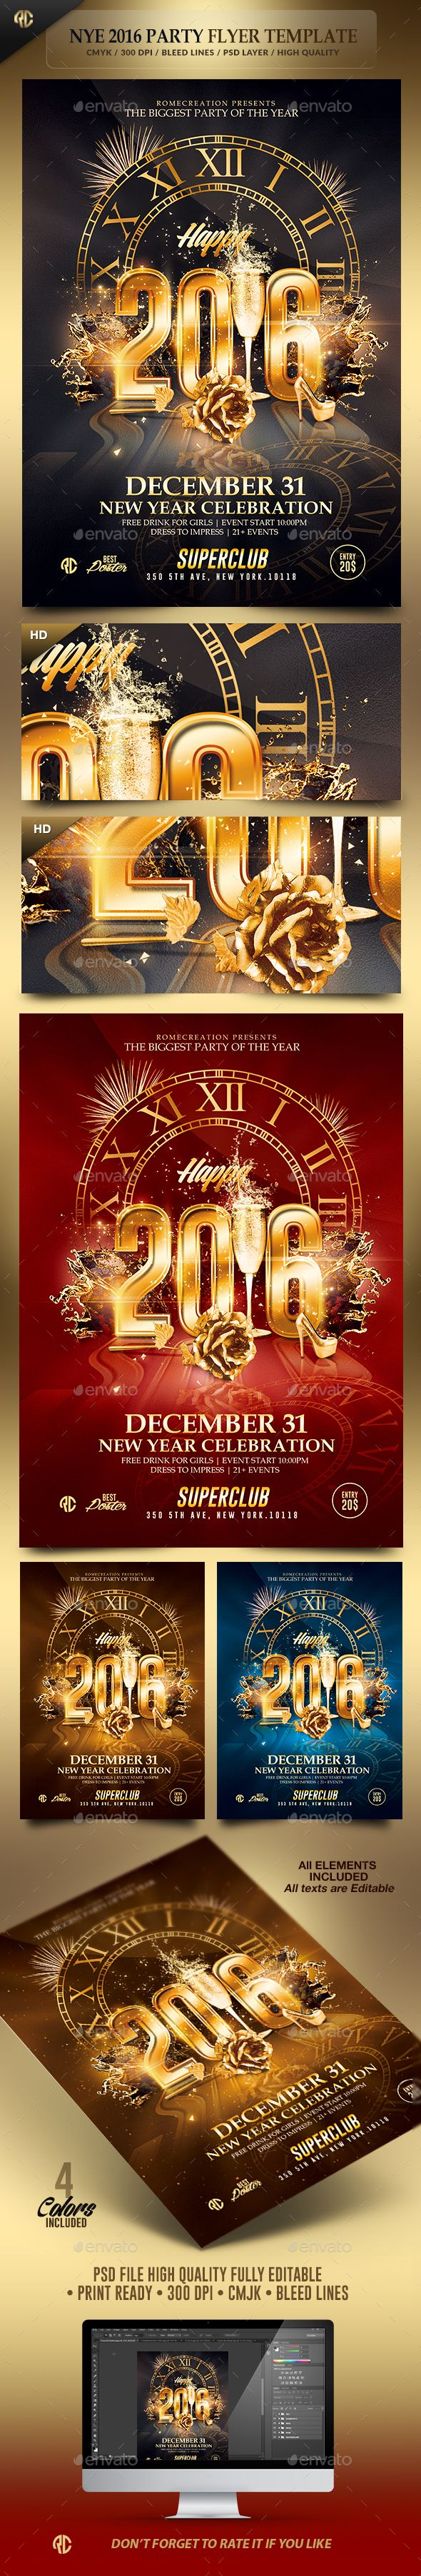 2016 New Year Party Flyer Template PSD #design #nye Download: http://graphicriver.net/item/2016-new-year-party-psd-flyer-template/13465625?ref=ksioks